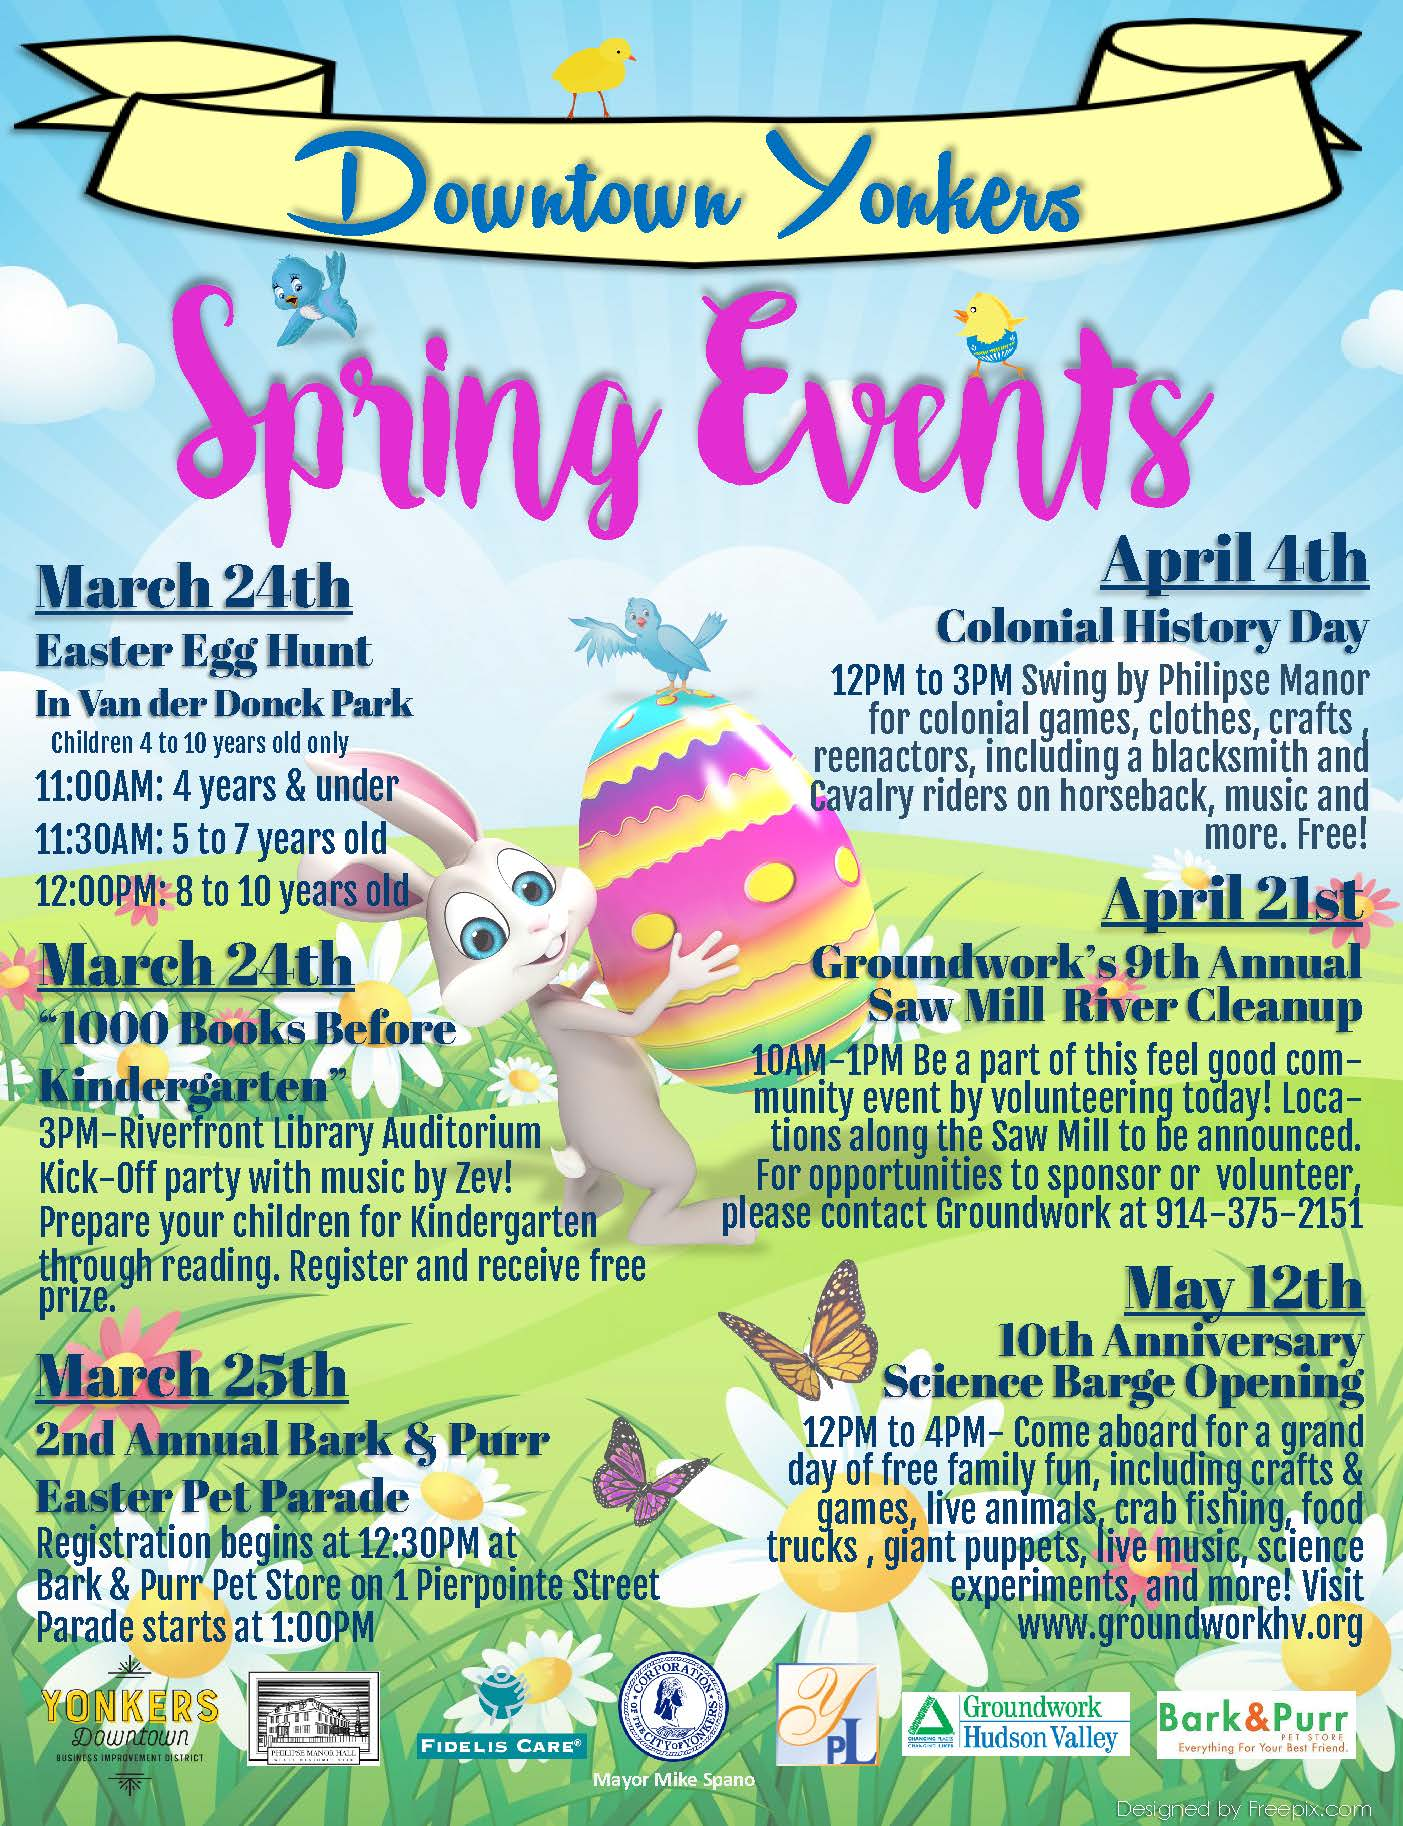 Spring Events in the Downtown!